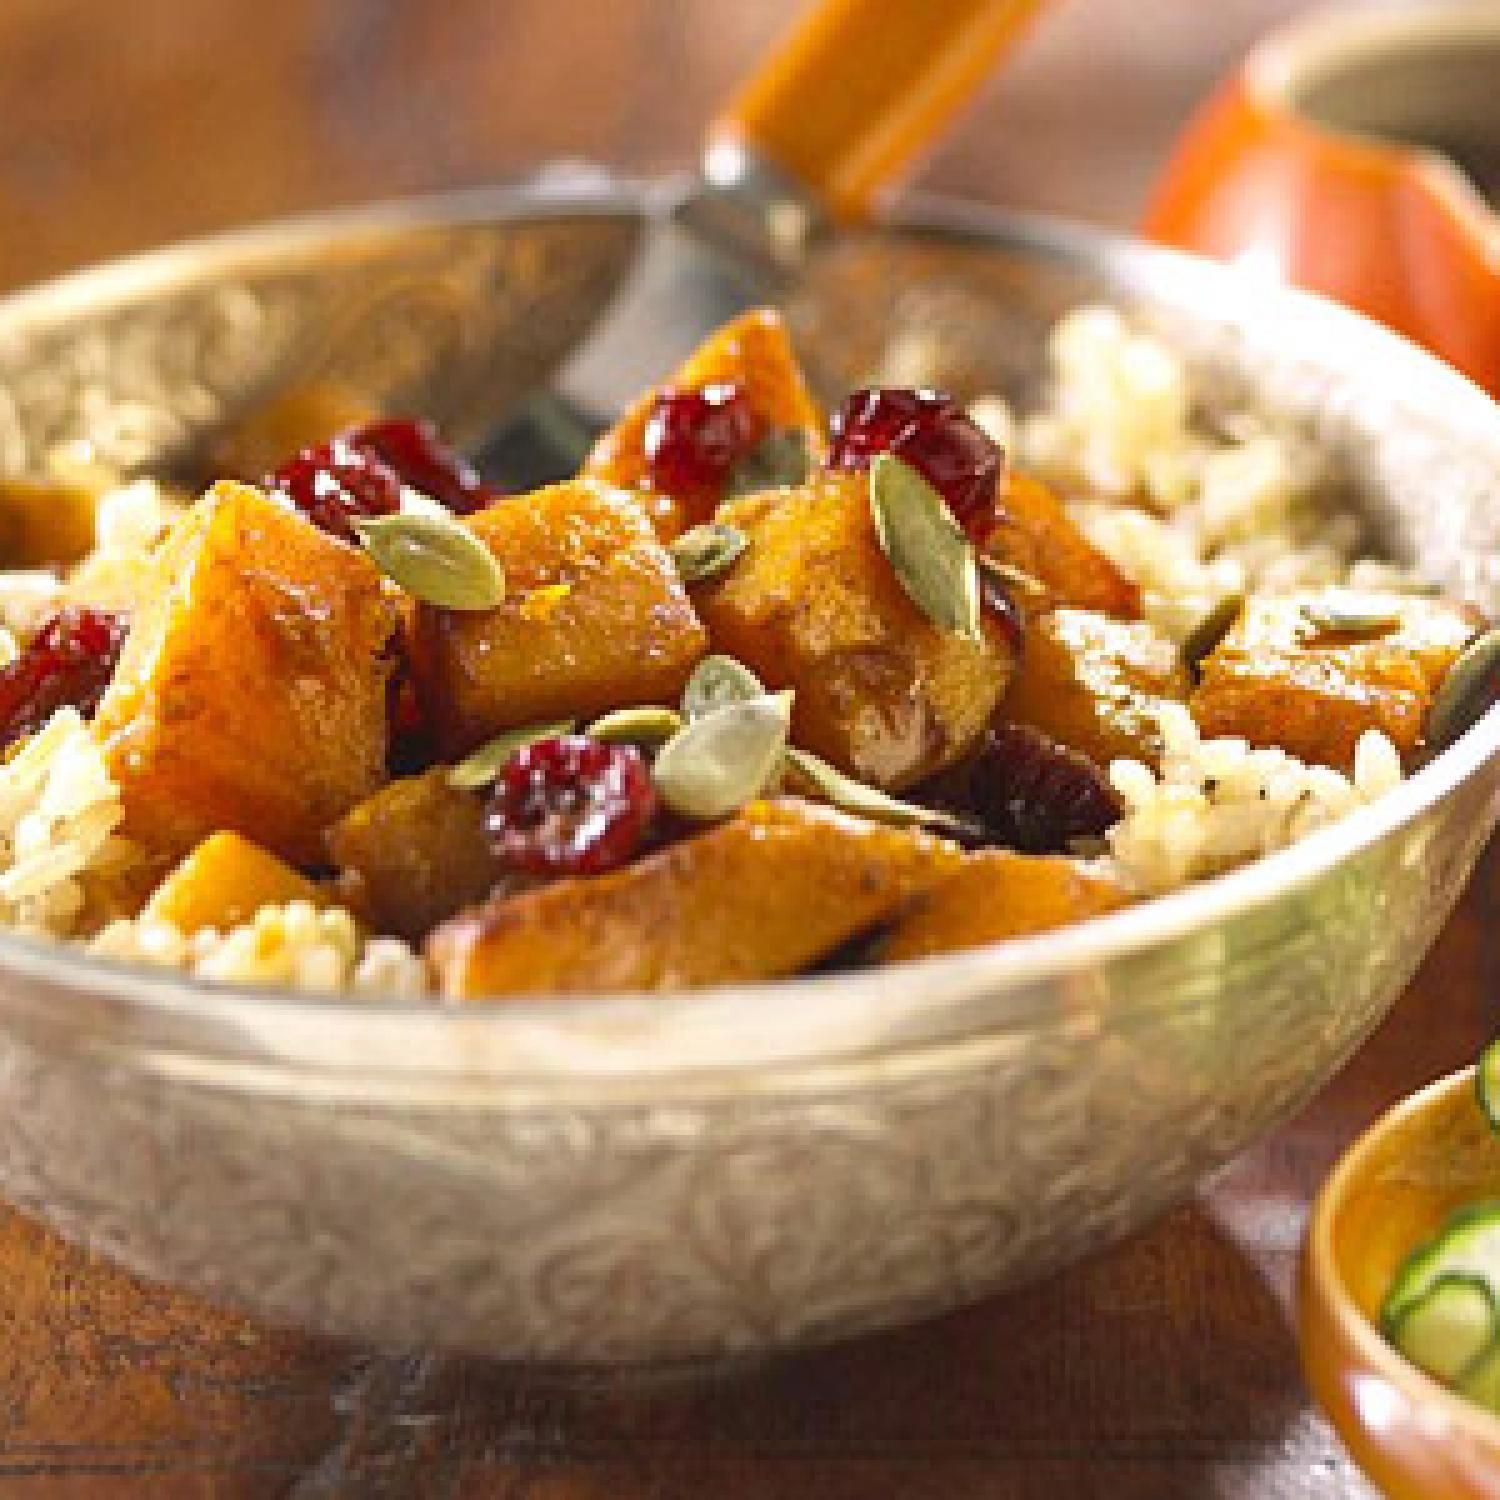 Indian-Spiced Squash.  Save your pumpkin seeds to sprinkle on the top of this perfectly spiced dish, which can be made with any winter squash variety you wish. Ginger, curry powder, and cumin add a nice heat, while raisins (or cranberries) add a chewy sweetness.